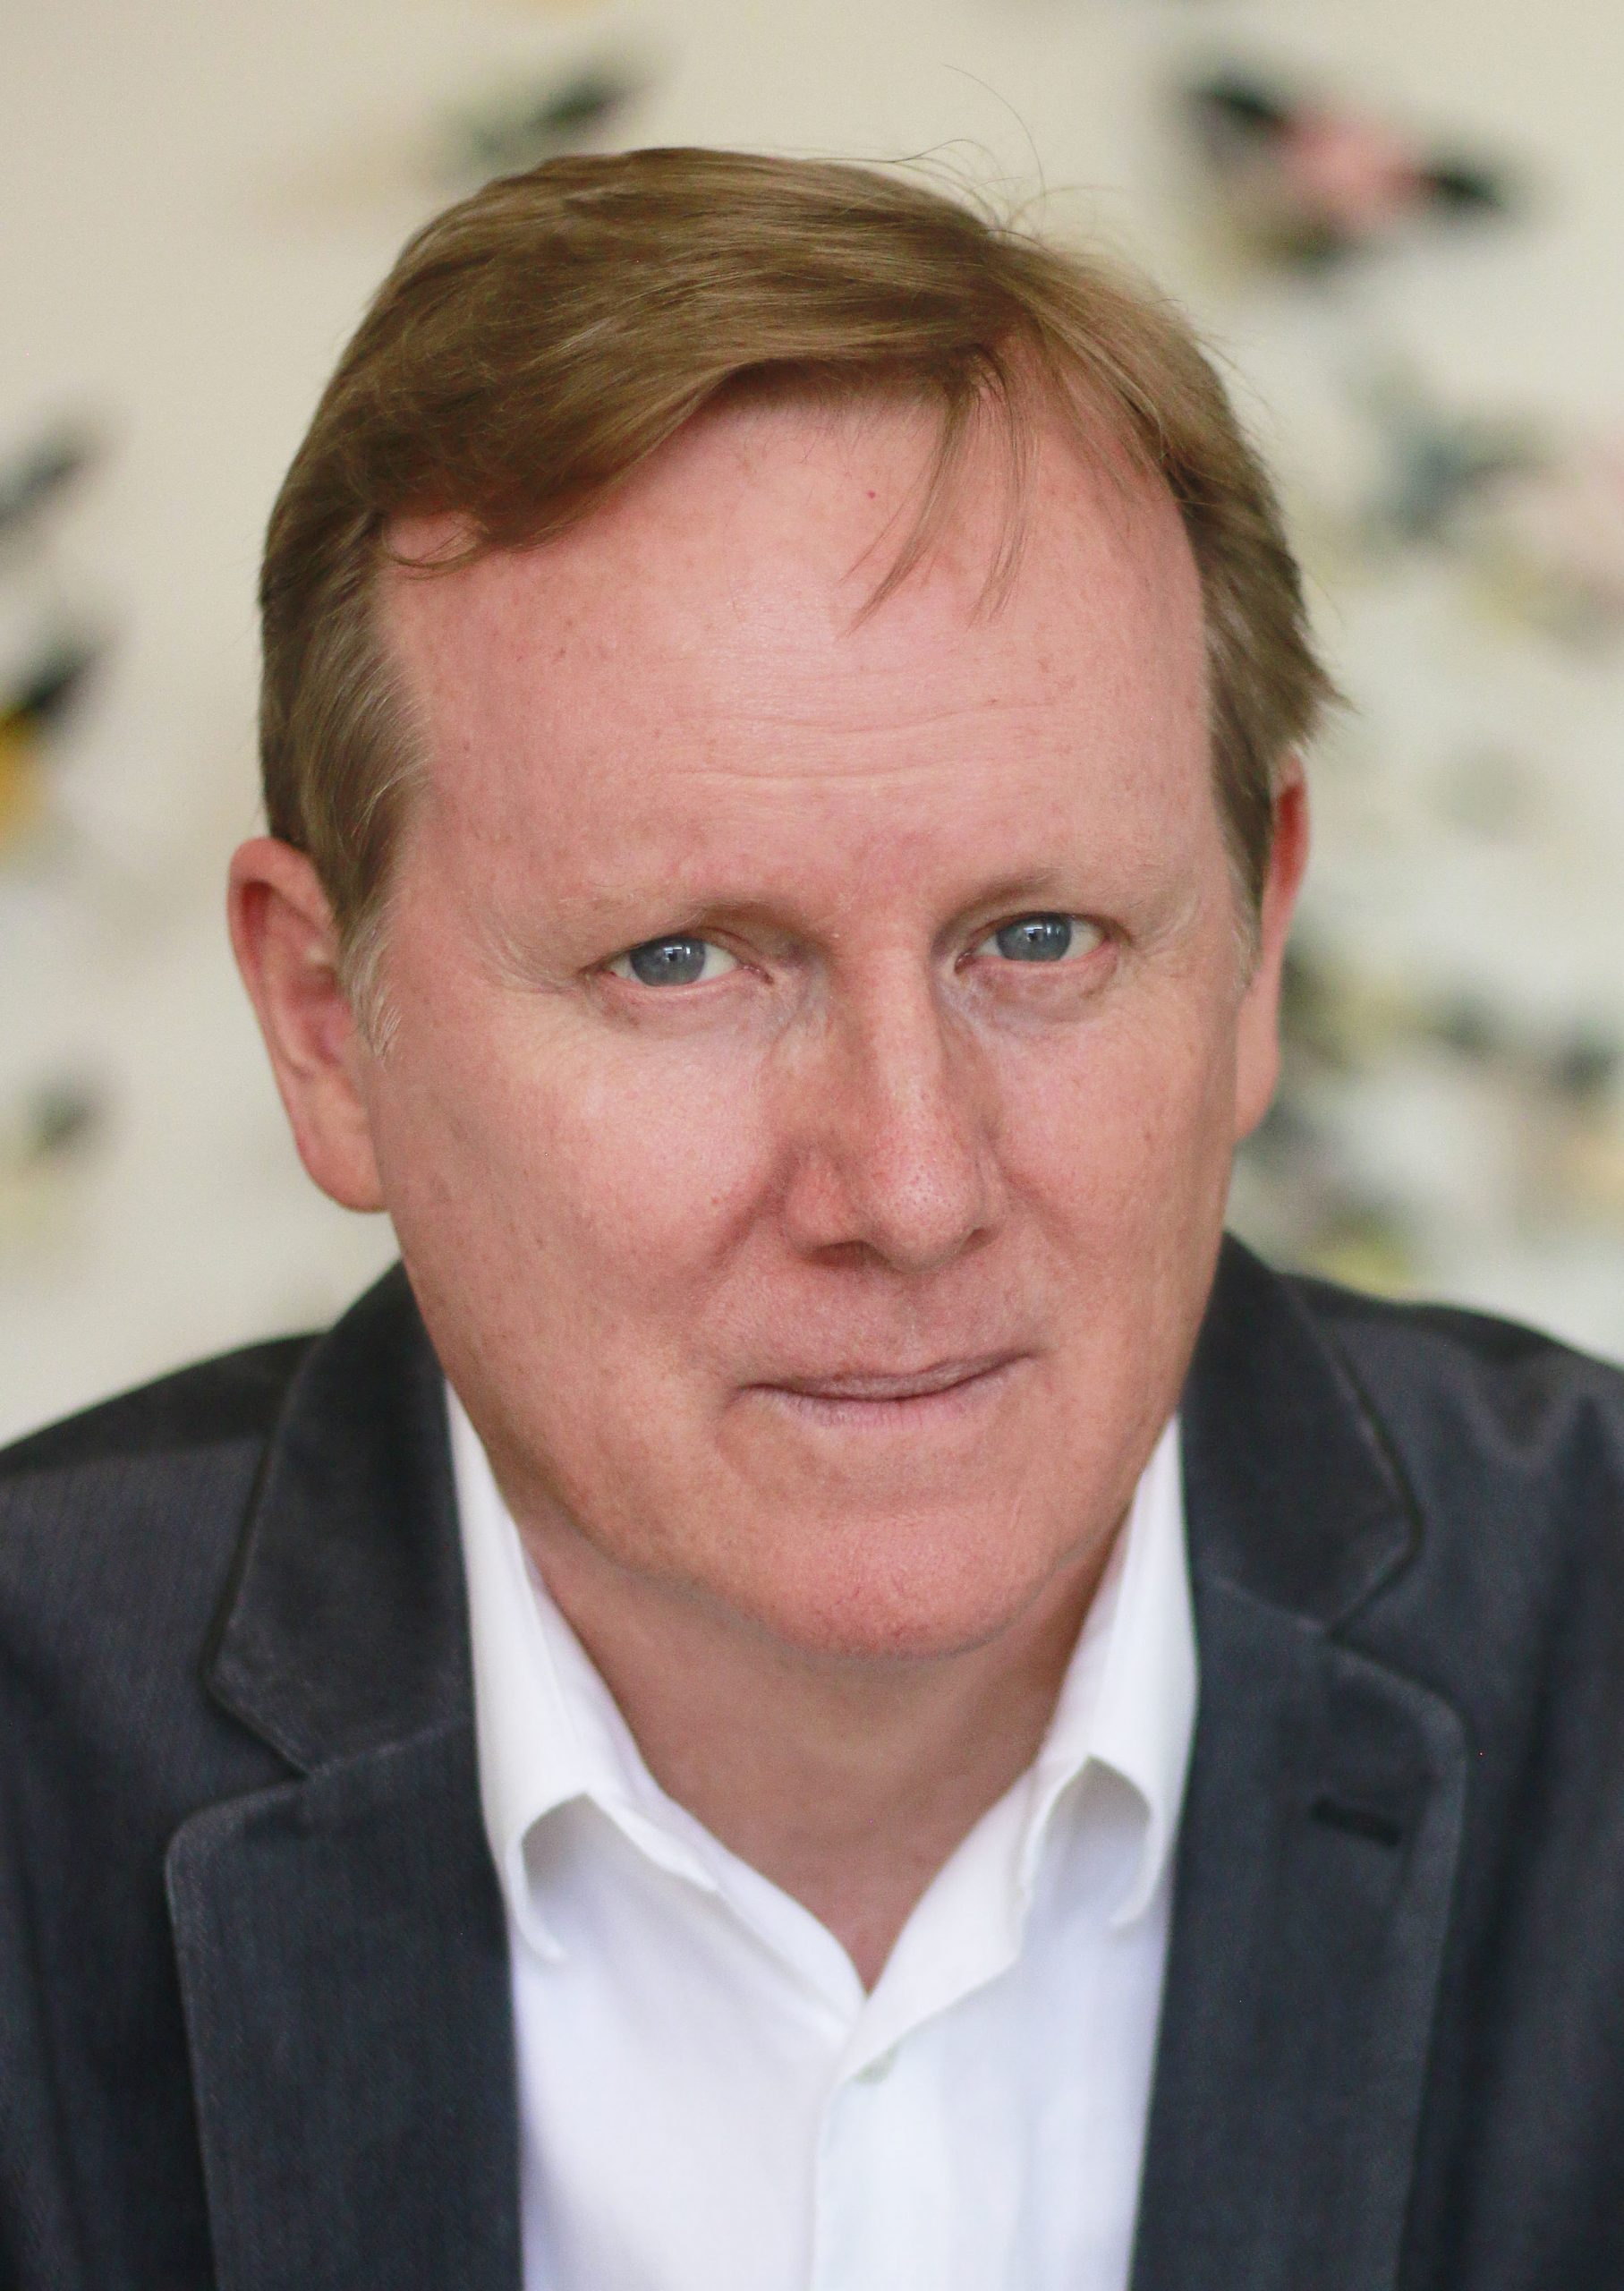 Portrait of Dave Surina. A middle aged man with light brown hair and green eyes. He wears a black jacket with white dress shirt, in front of an out of focus floral background.